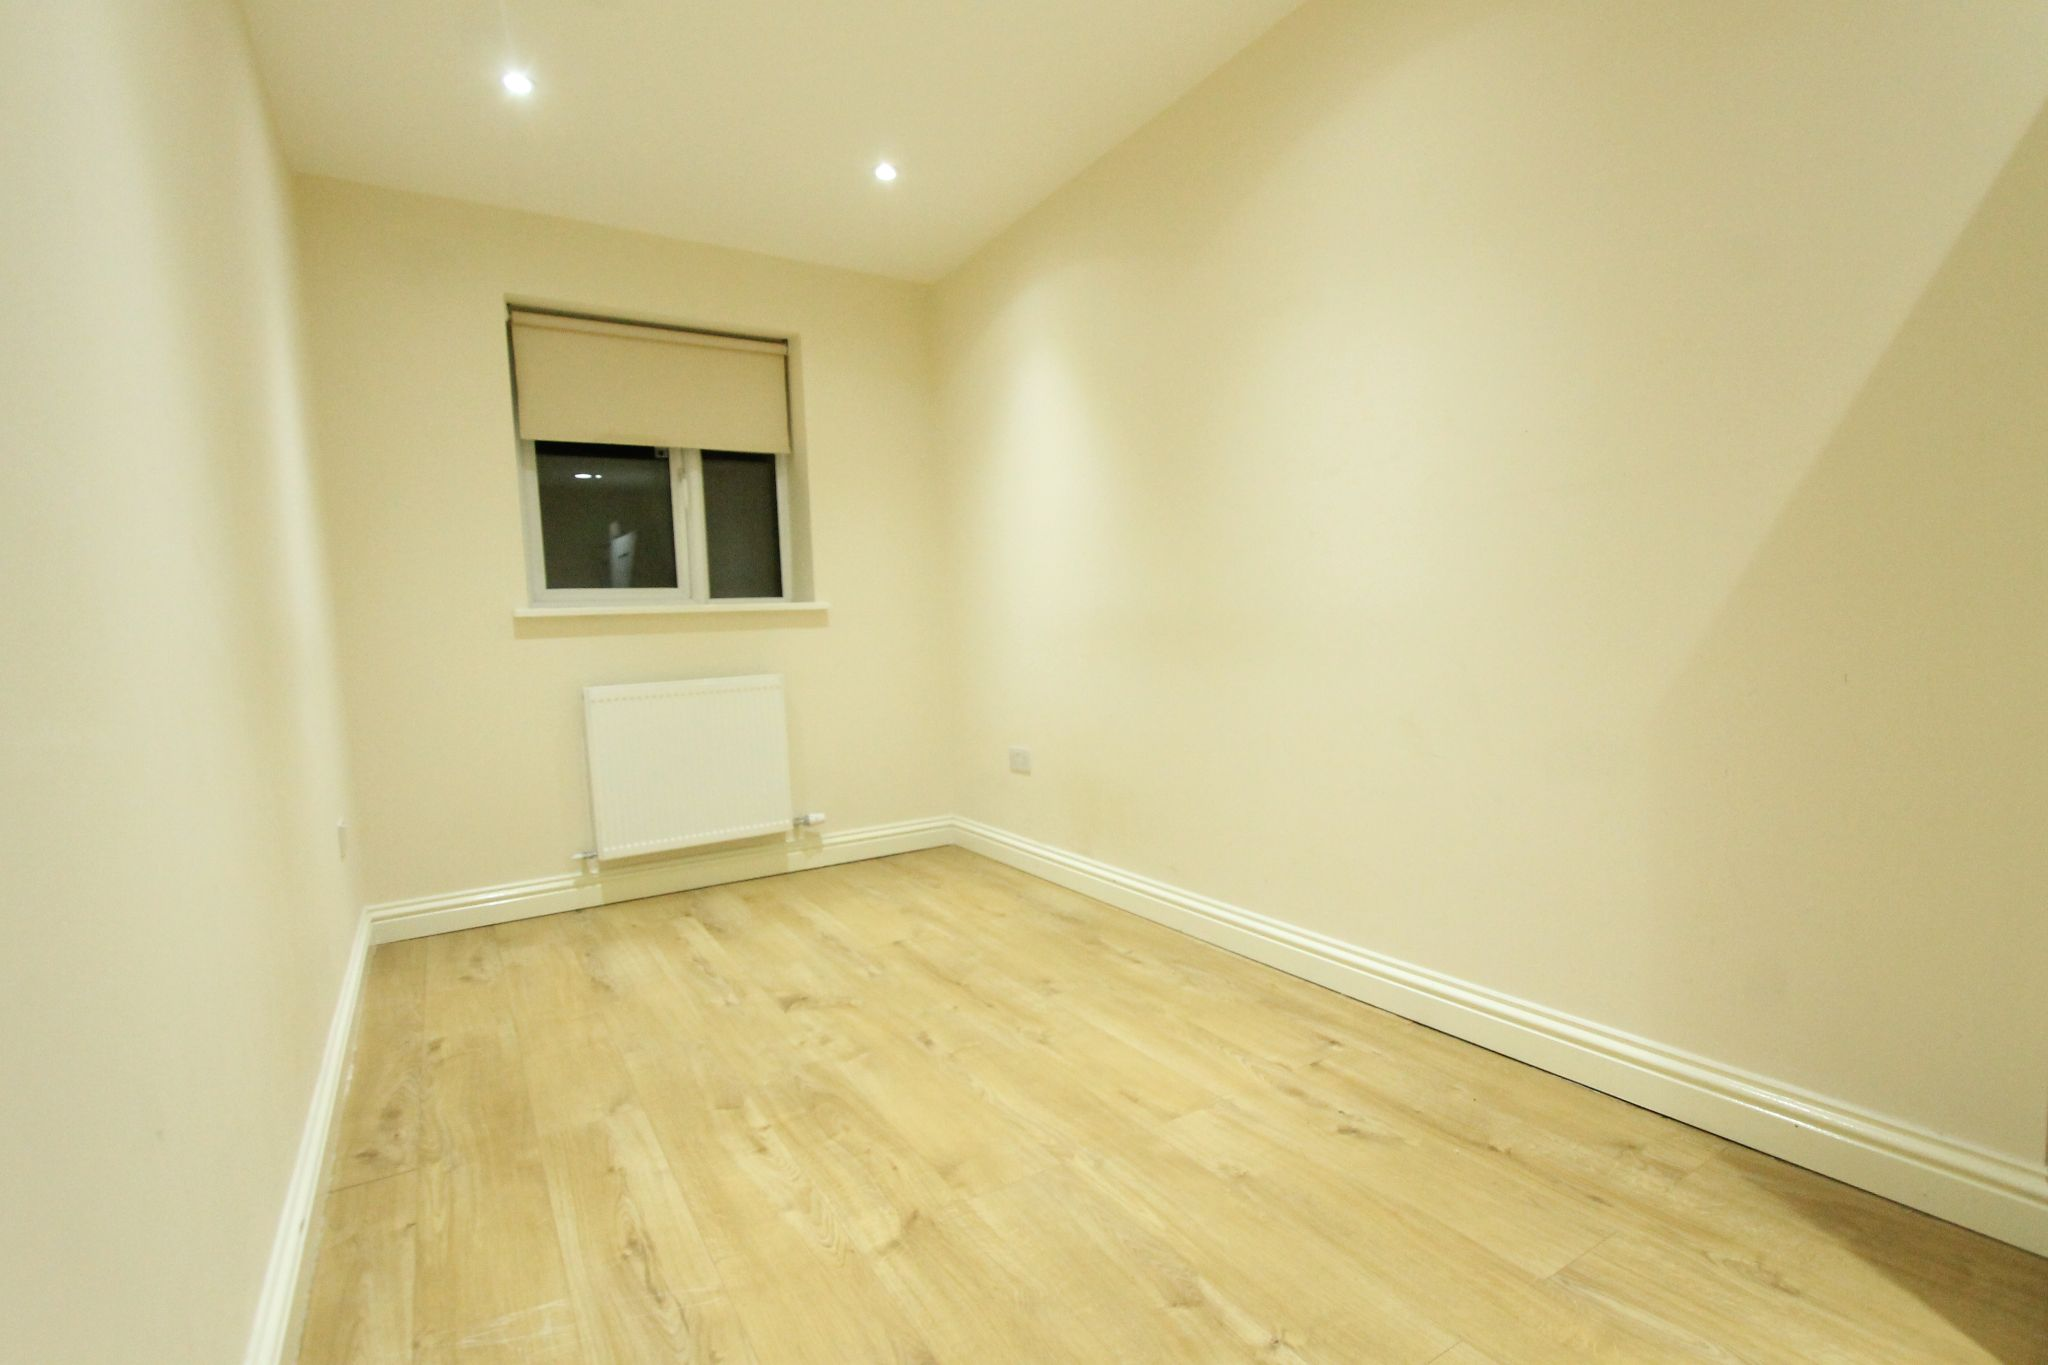 2 bedroom apartment flat/apartment To Let in Sutton - Photograph 2.